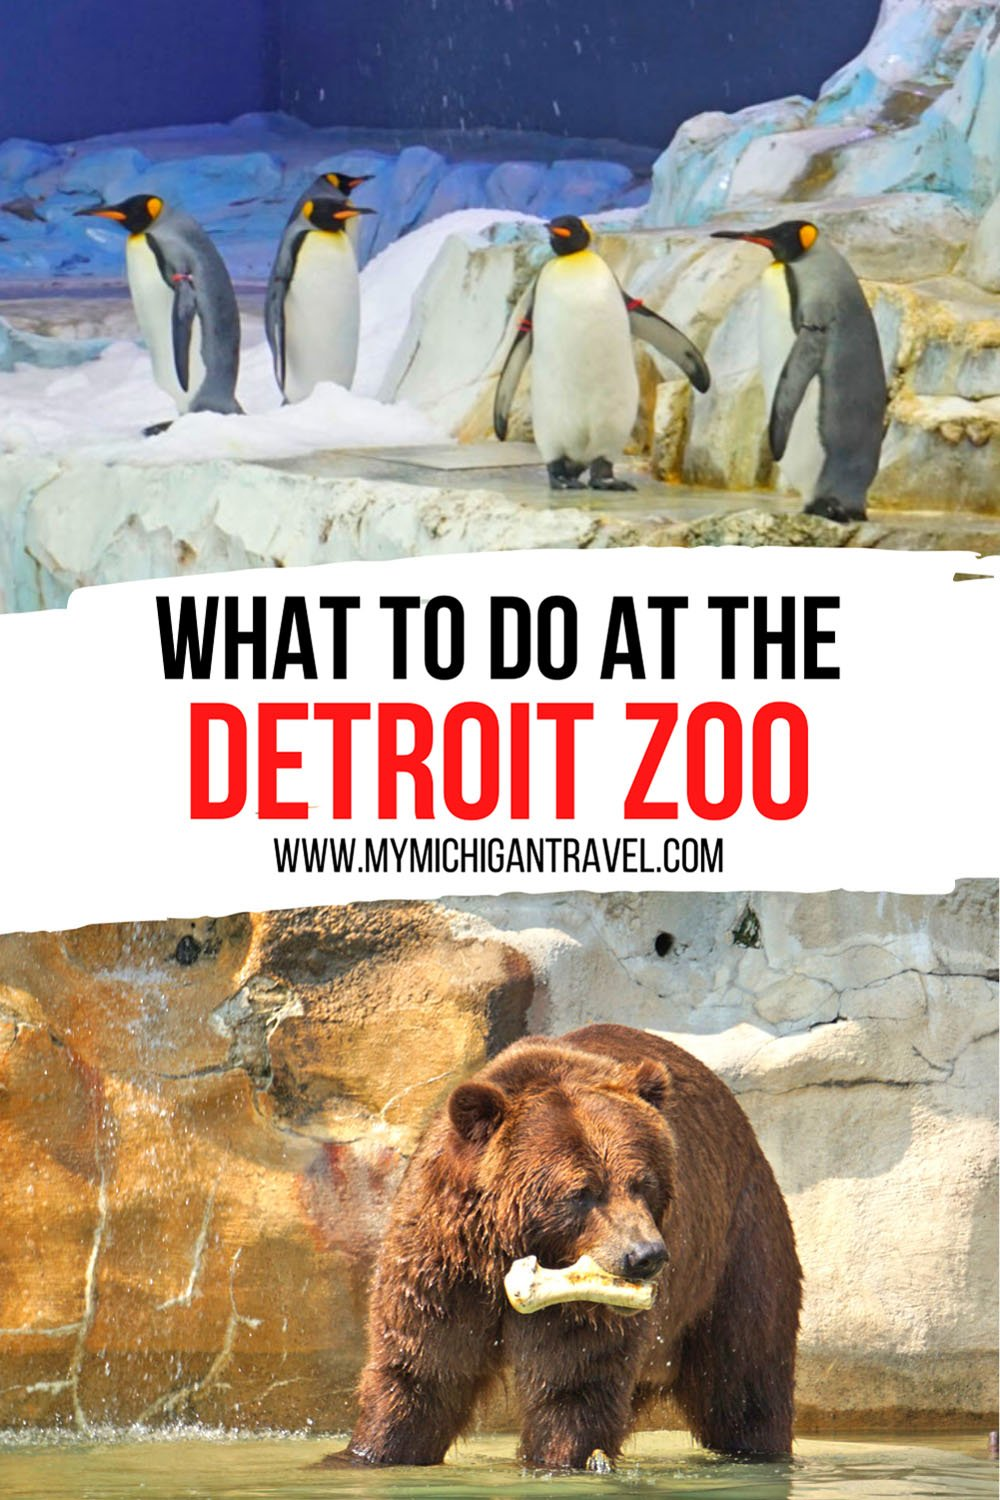 """Photo collage of king penguins in an indoor exhibit and a large grizzly bear holding a bone with text overlay reading """"what to do at the Detroit Zoo"""""""